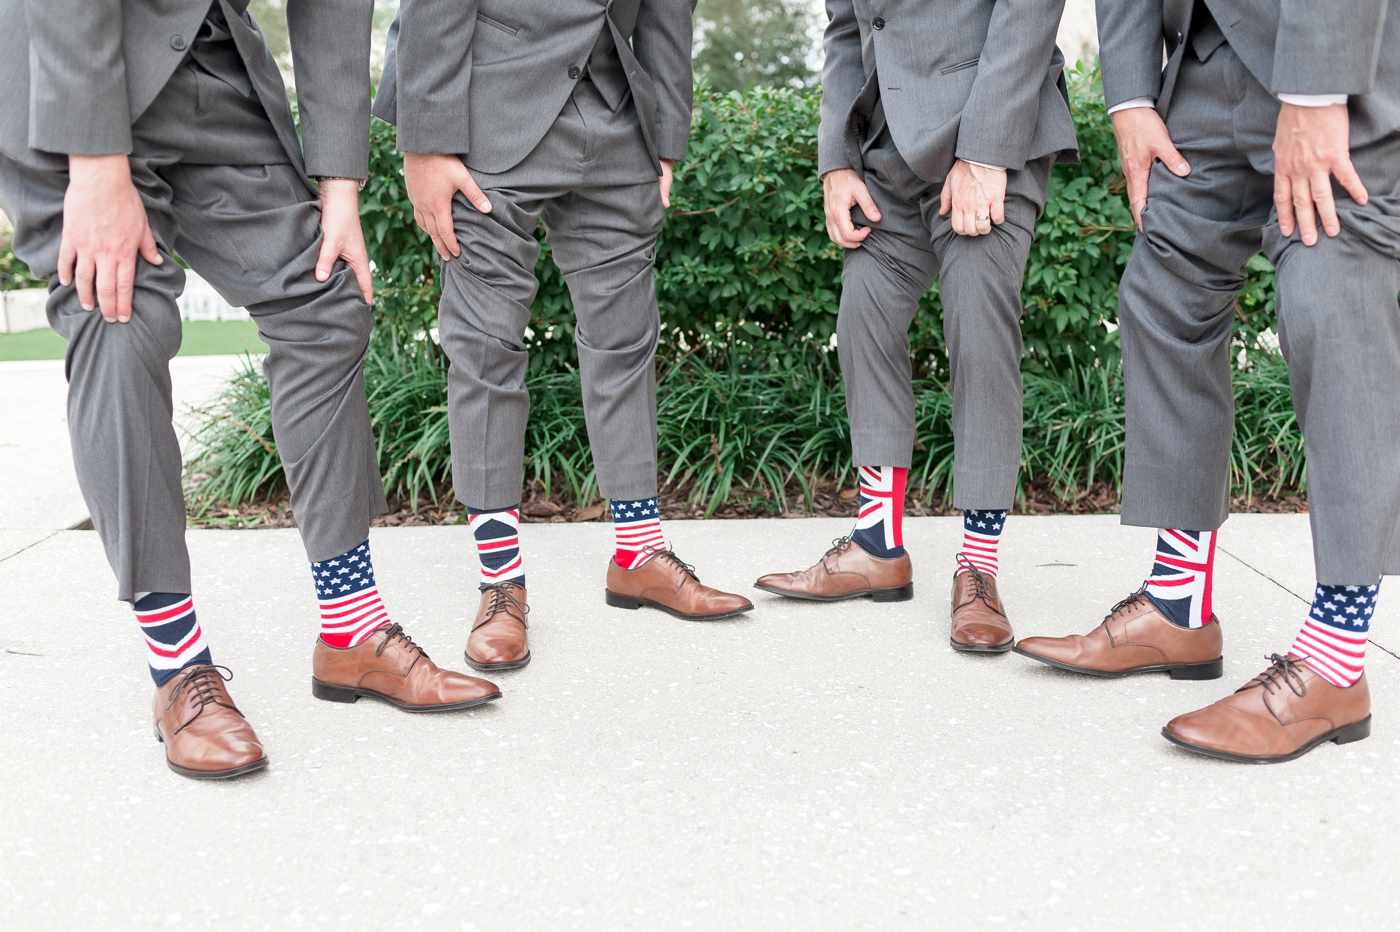 USA and UK groomsmen socks